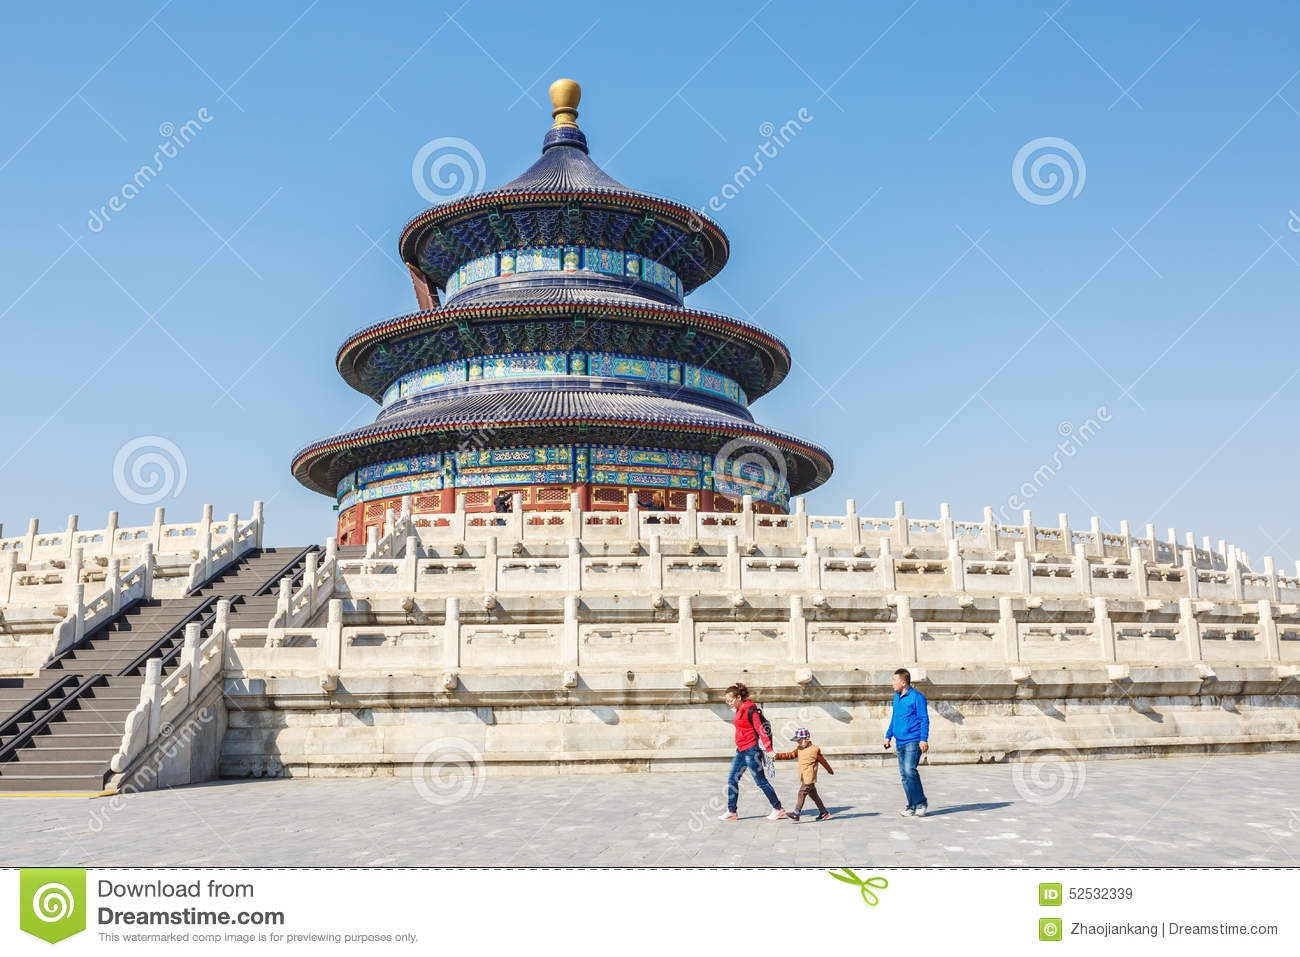 Worlds Most Famous Ancient Architecture Of The Temple Of Heaven